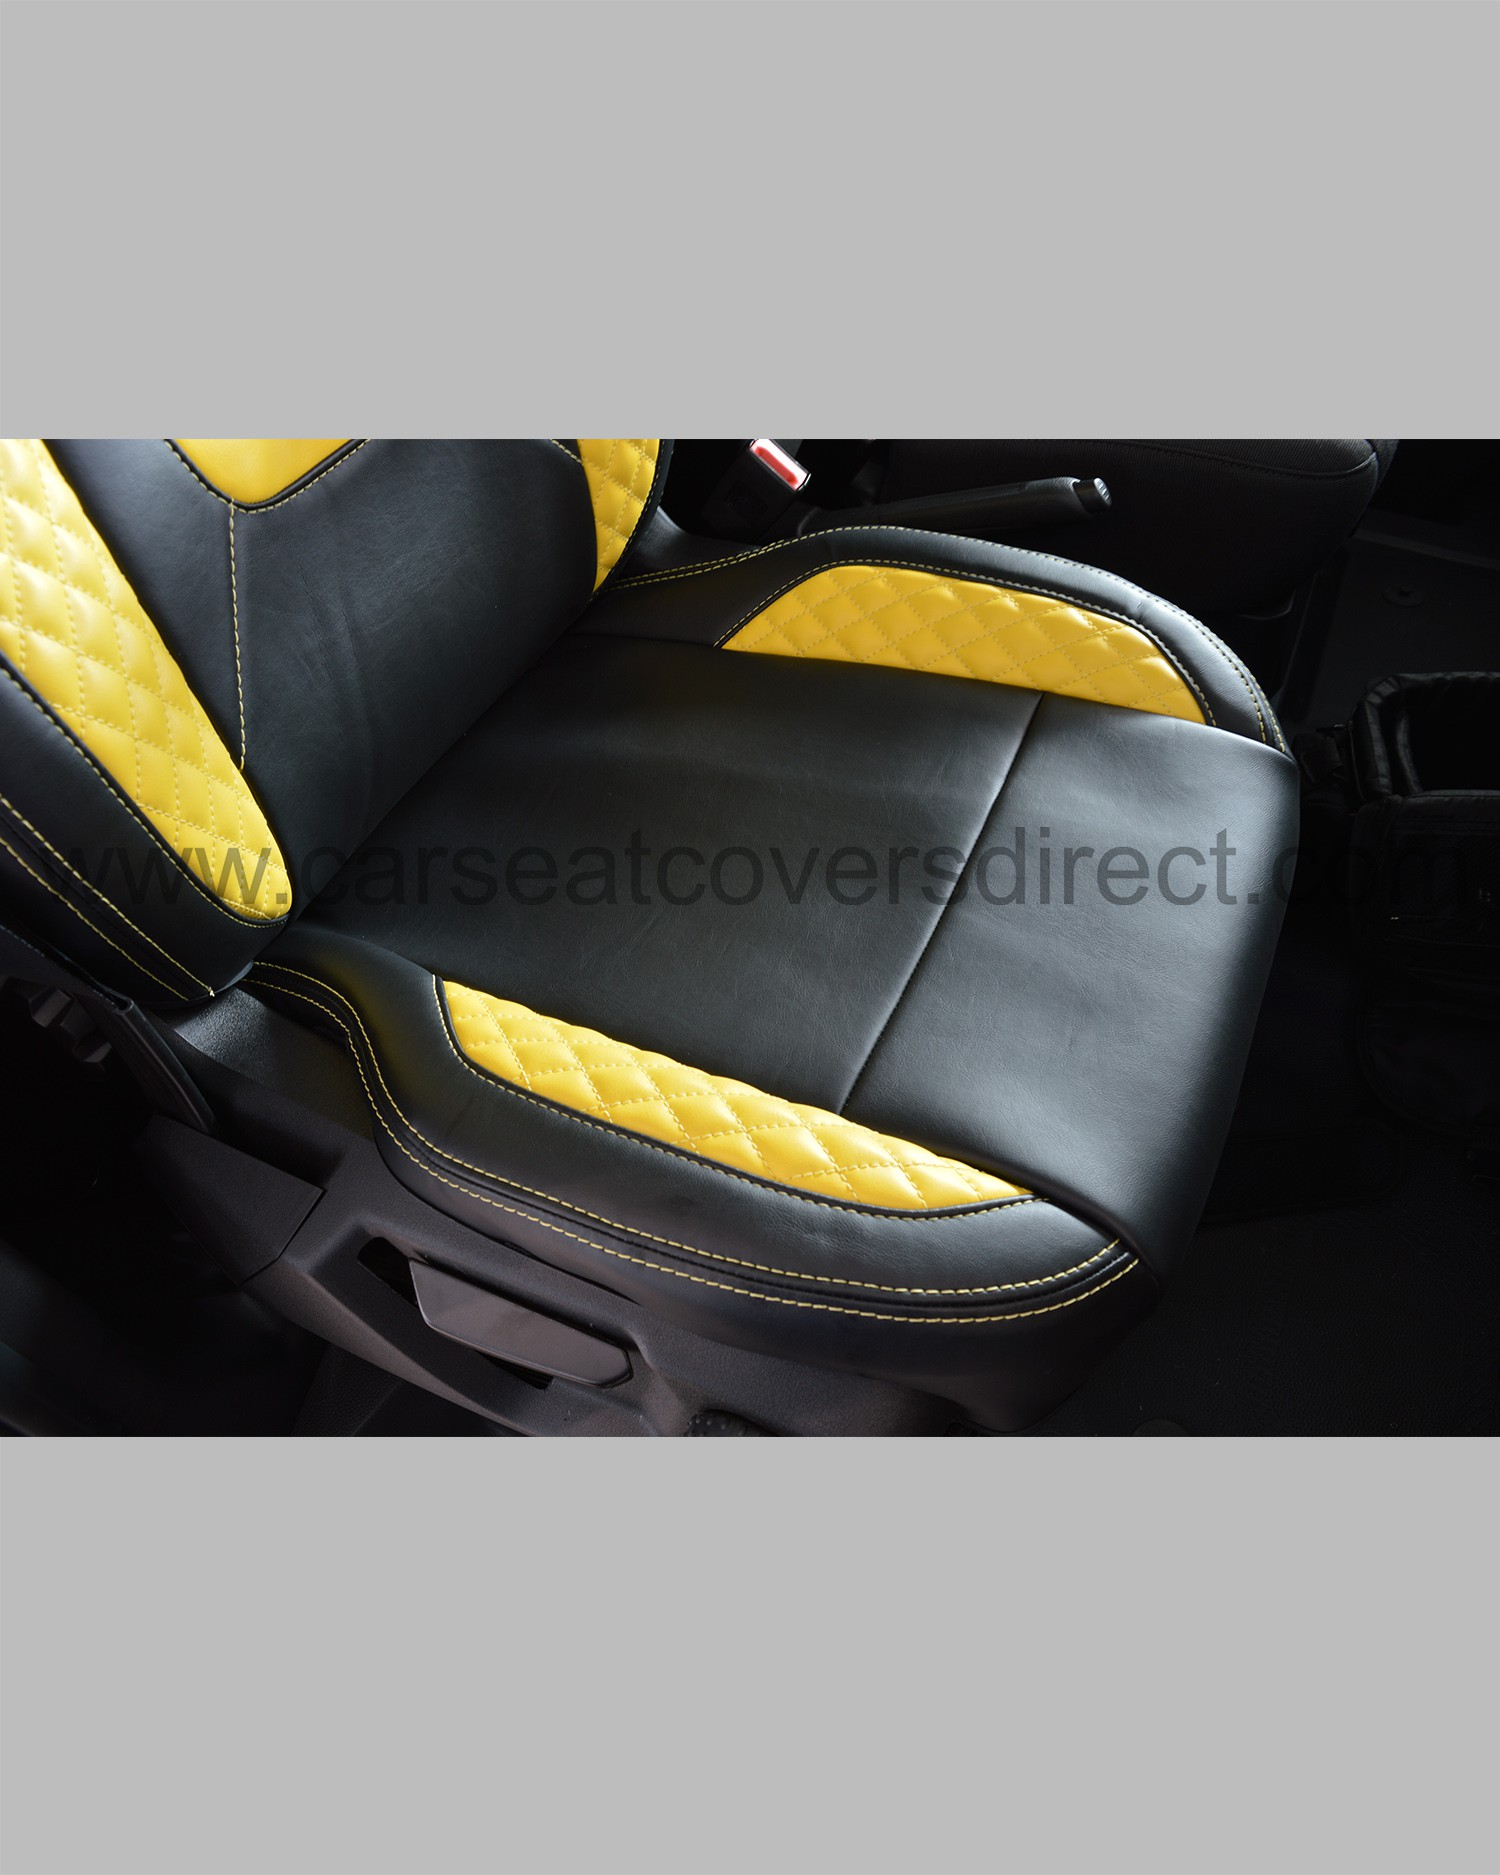 Ford Transit Custom Seat Covers - Black with Yellow Car Seat Covers Direct - Tailored To Your Choice